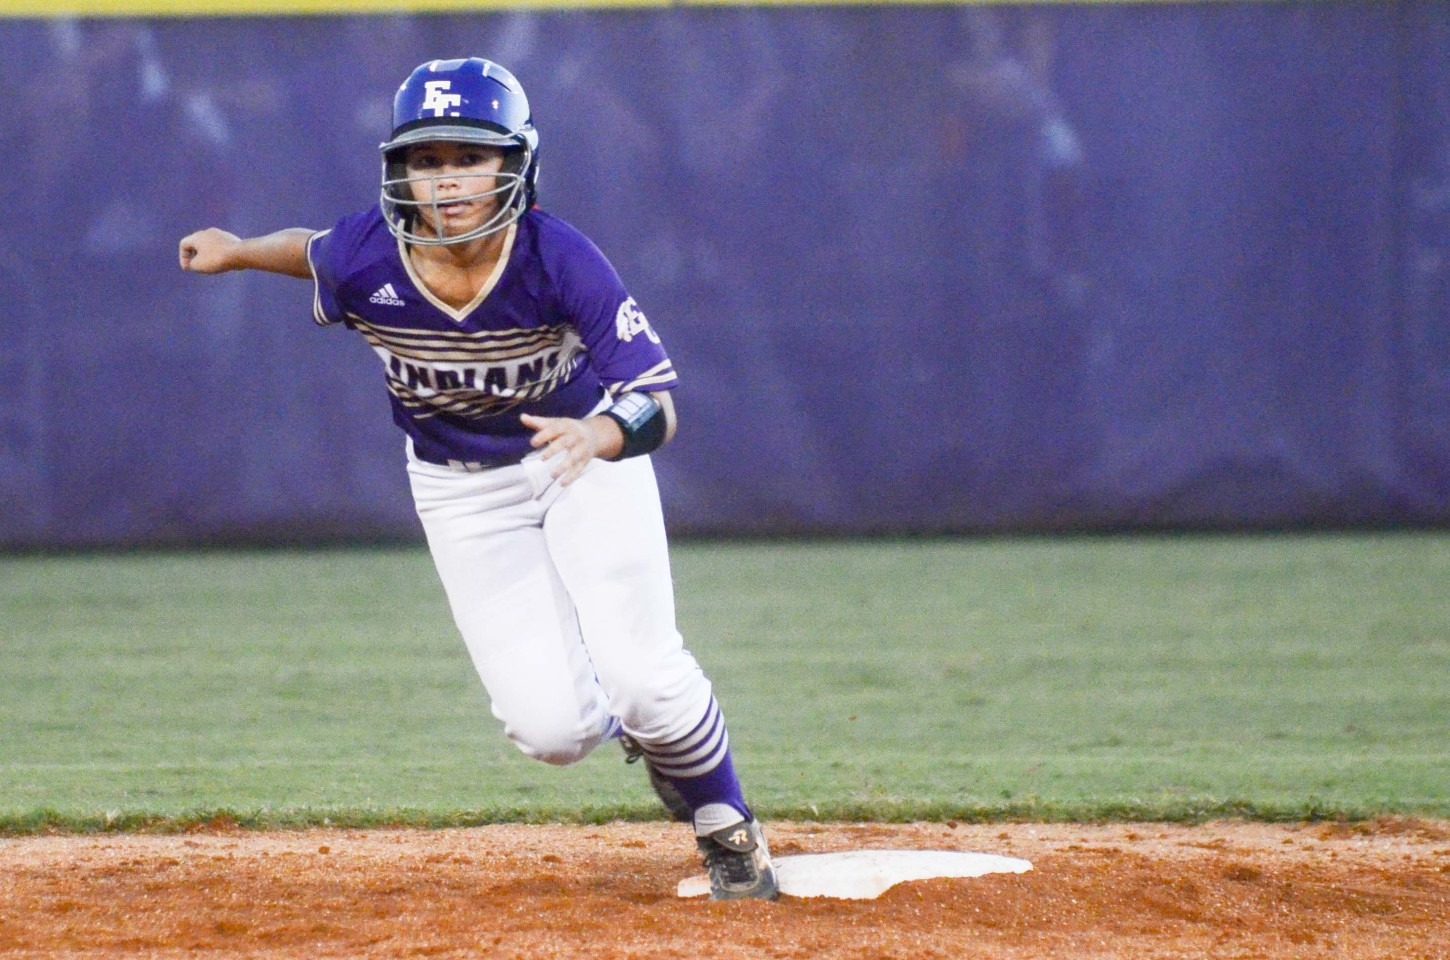 Senior Kris Odum and the Lady Indians were active on the bases in 10-0 and 16-0 victories